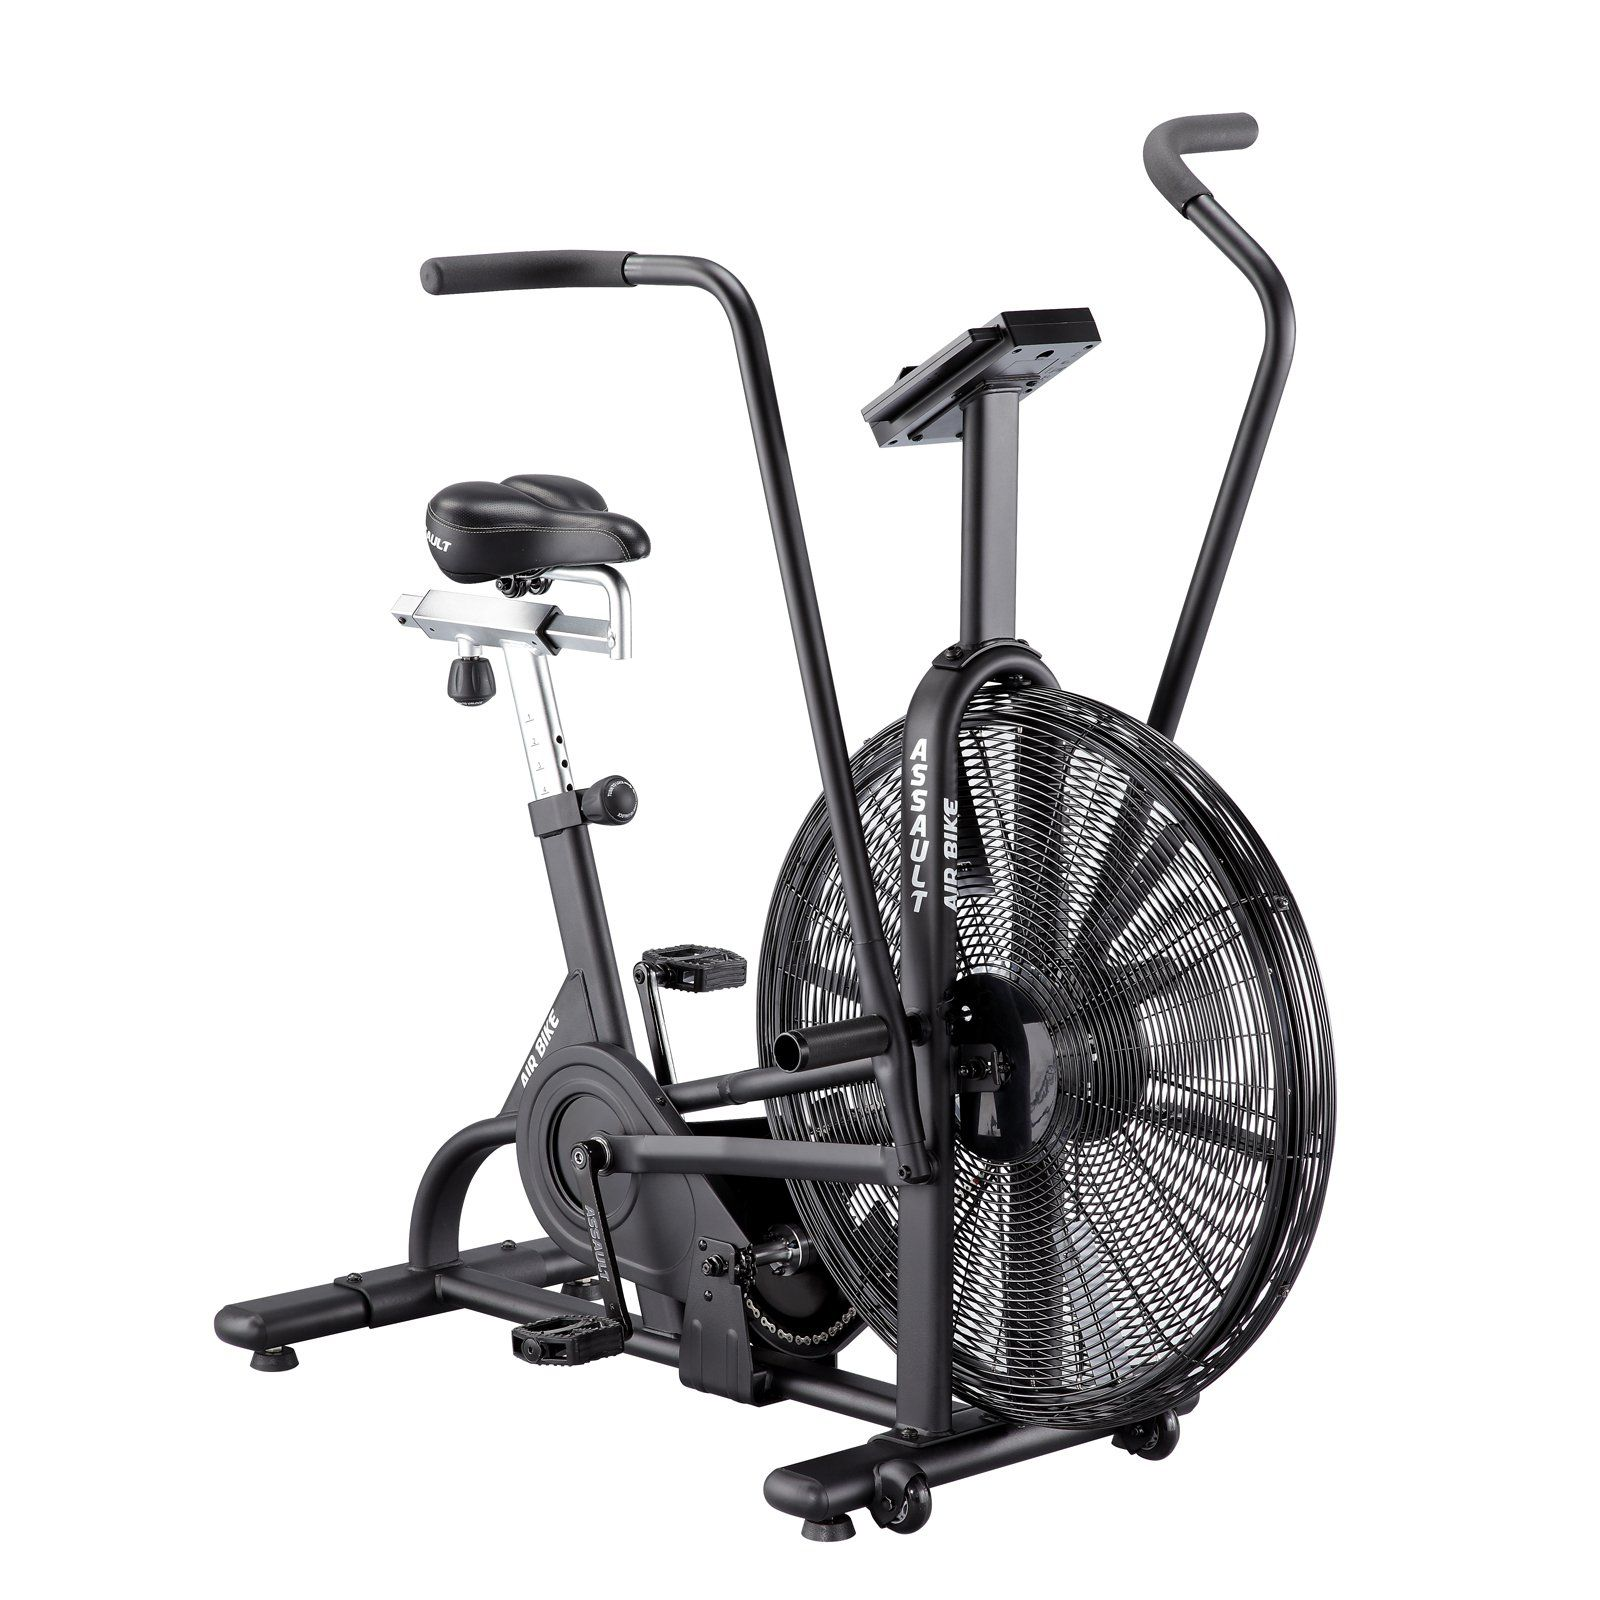 Jan 07, 2015 - Lifecore Fitness Assault Air Bike Trainer. Details about the Amazon.com Deal of the Day at https://www.facebook.com/pages/Amazon-Deal-of-the-Day/670325696418706